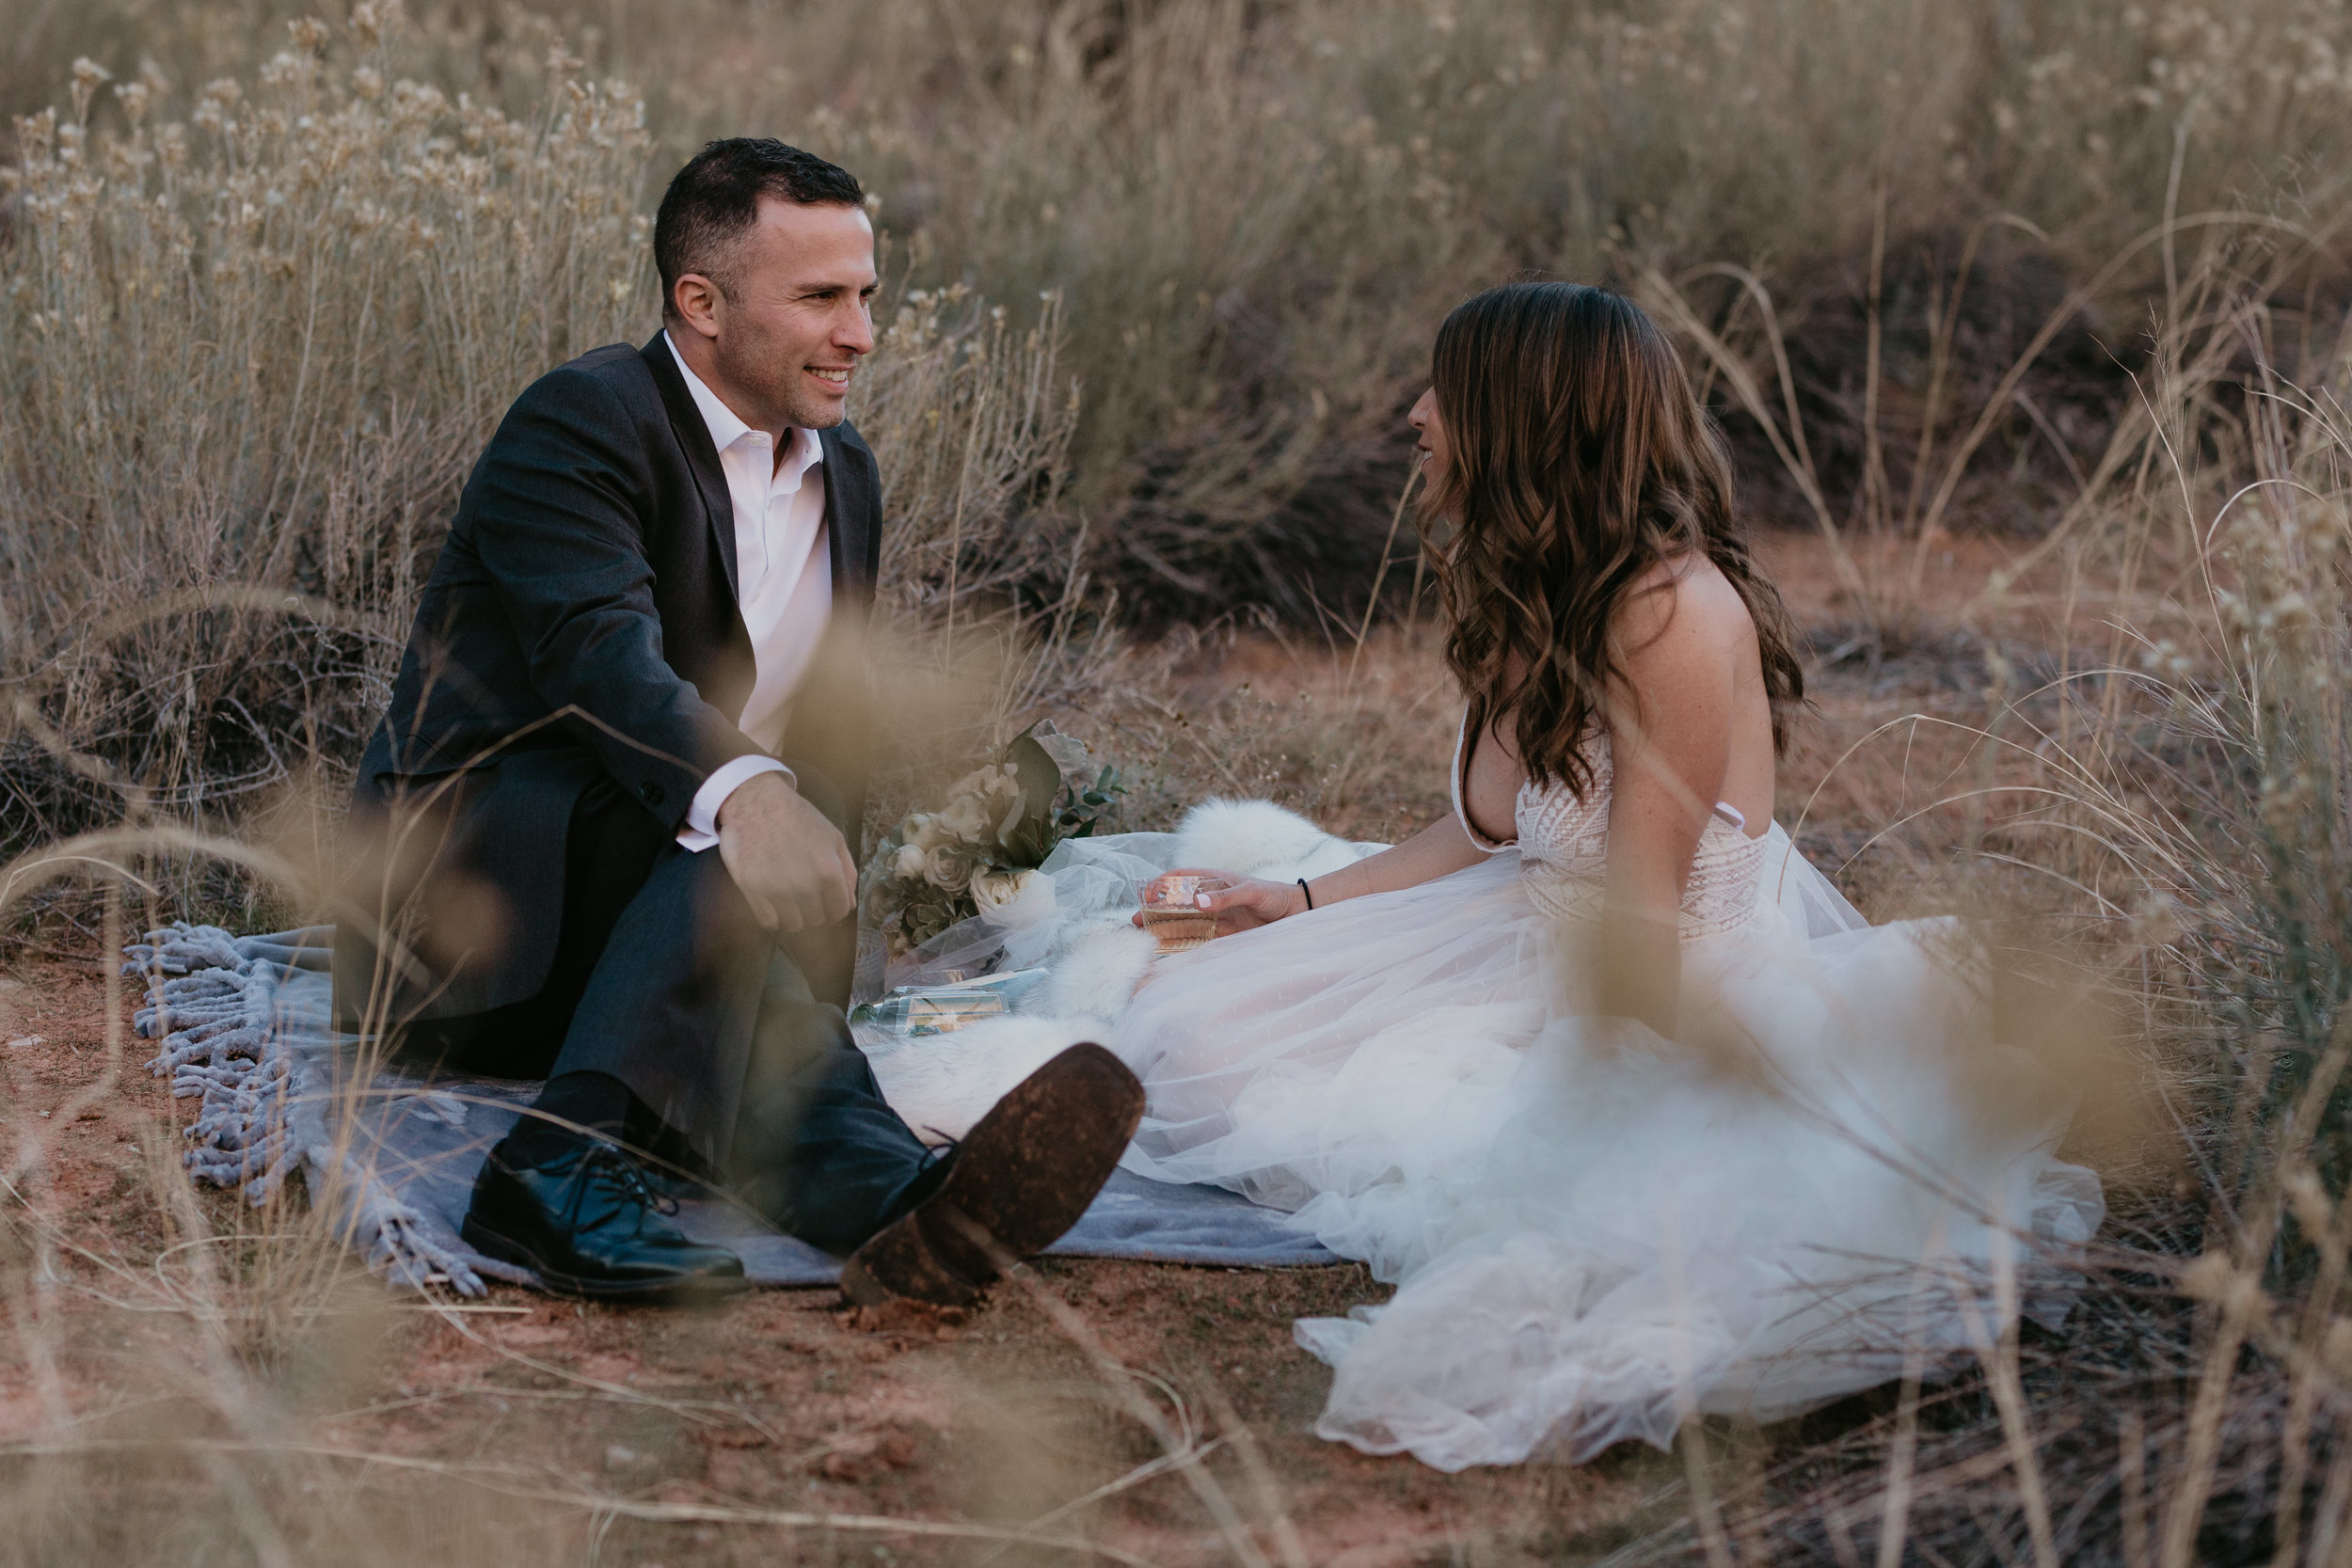 nicole-daacke-photography-zion-national-park-elopement-photographer-canyon-overlook-trail-elope-hiking-adventure-wedding-photos-fall-utah-red-rock-canyon-stgeorge-eloping-photographer-2.jpg